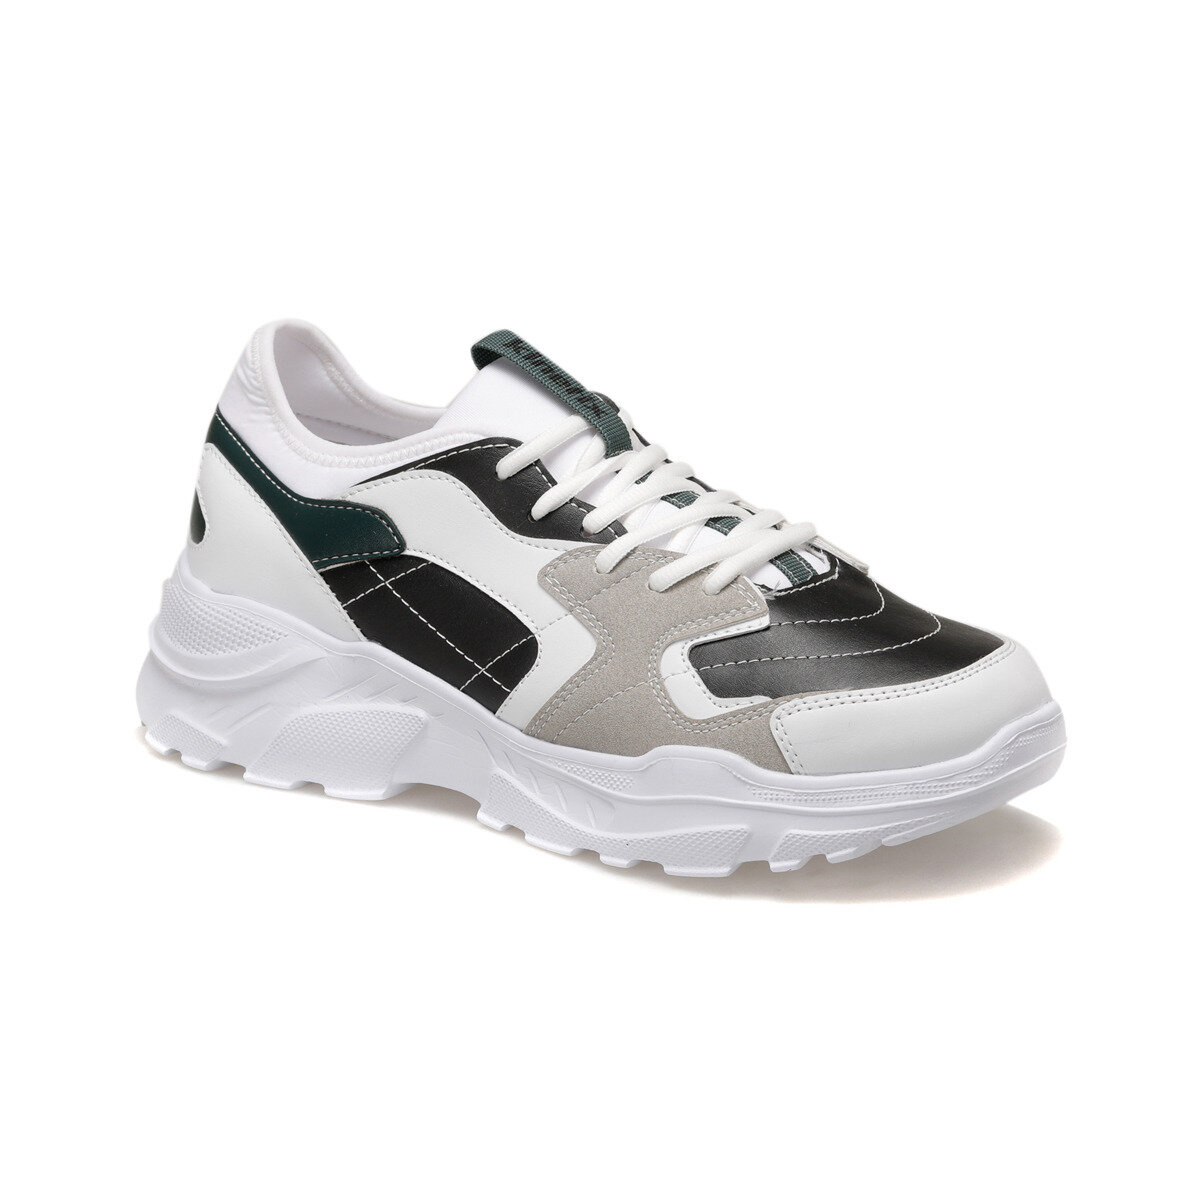 FLO CAPE M 9PR White Men 'S Sneaker Shoes KINETIX